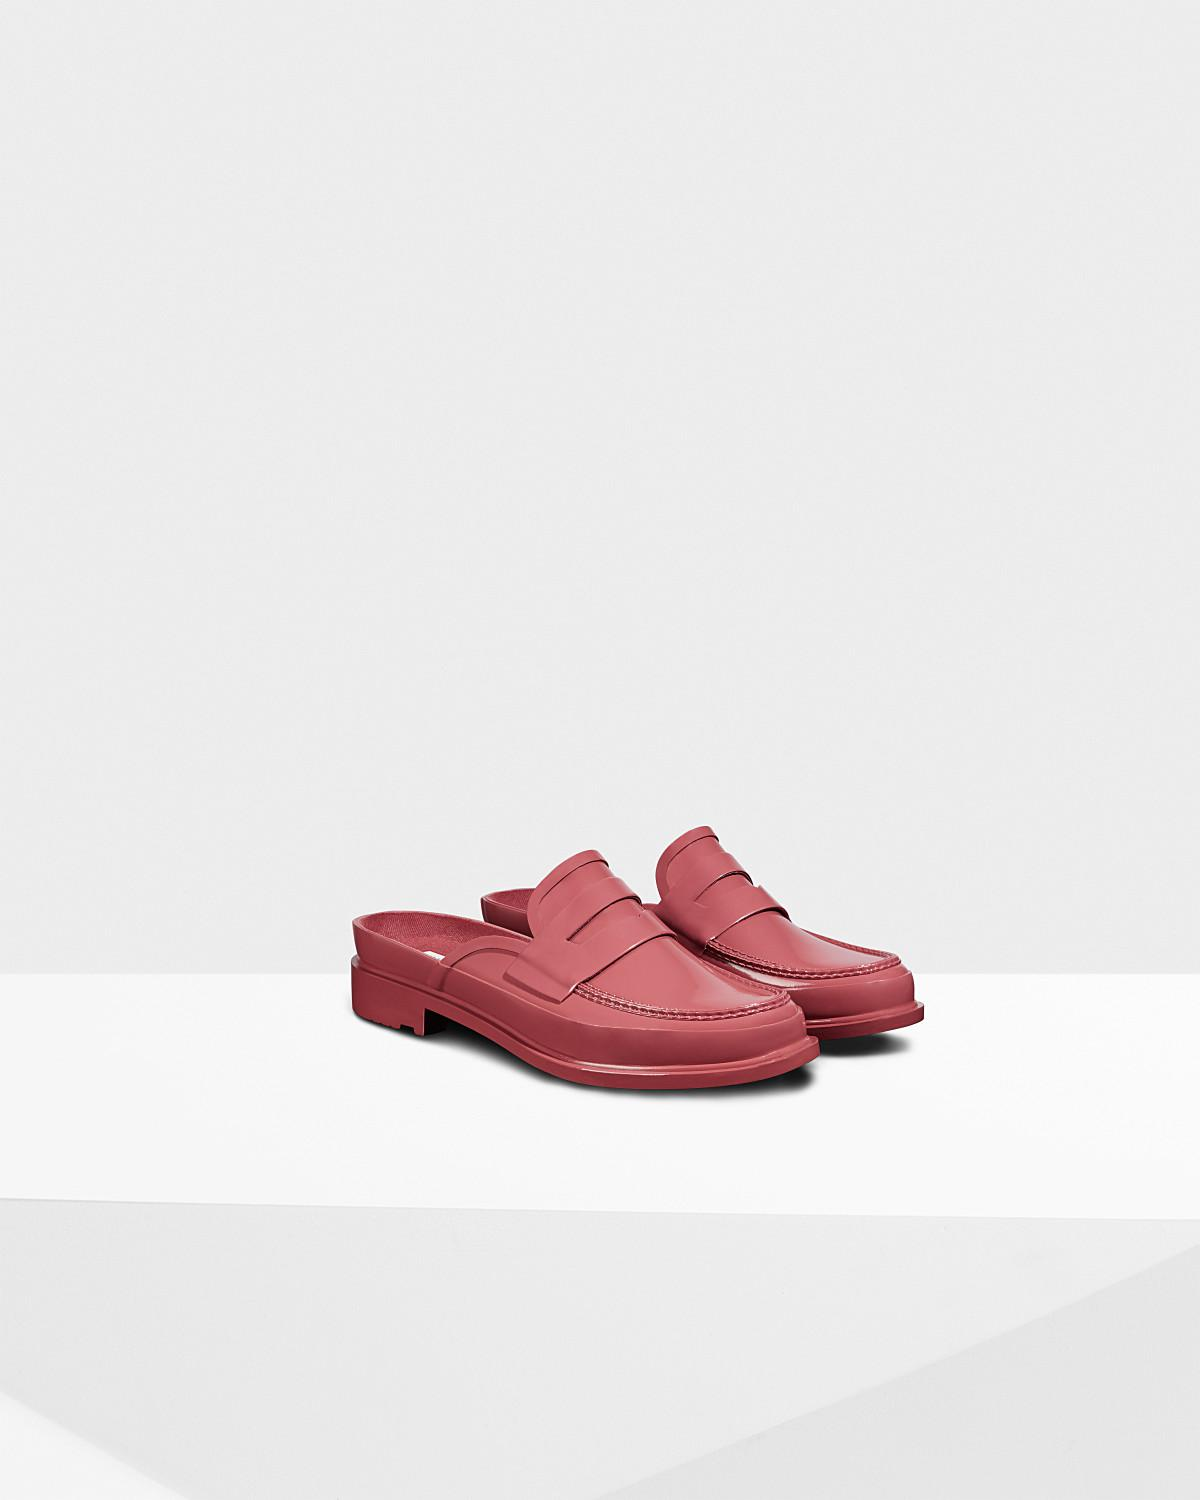 0eb3ef98ffc Hunter Original Backless Gloss Penny Loafer in Red - Lyst